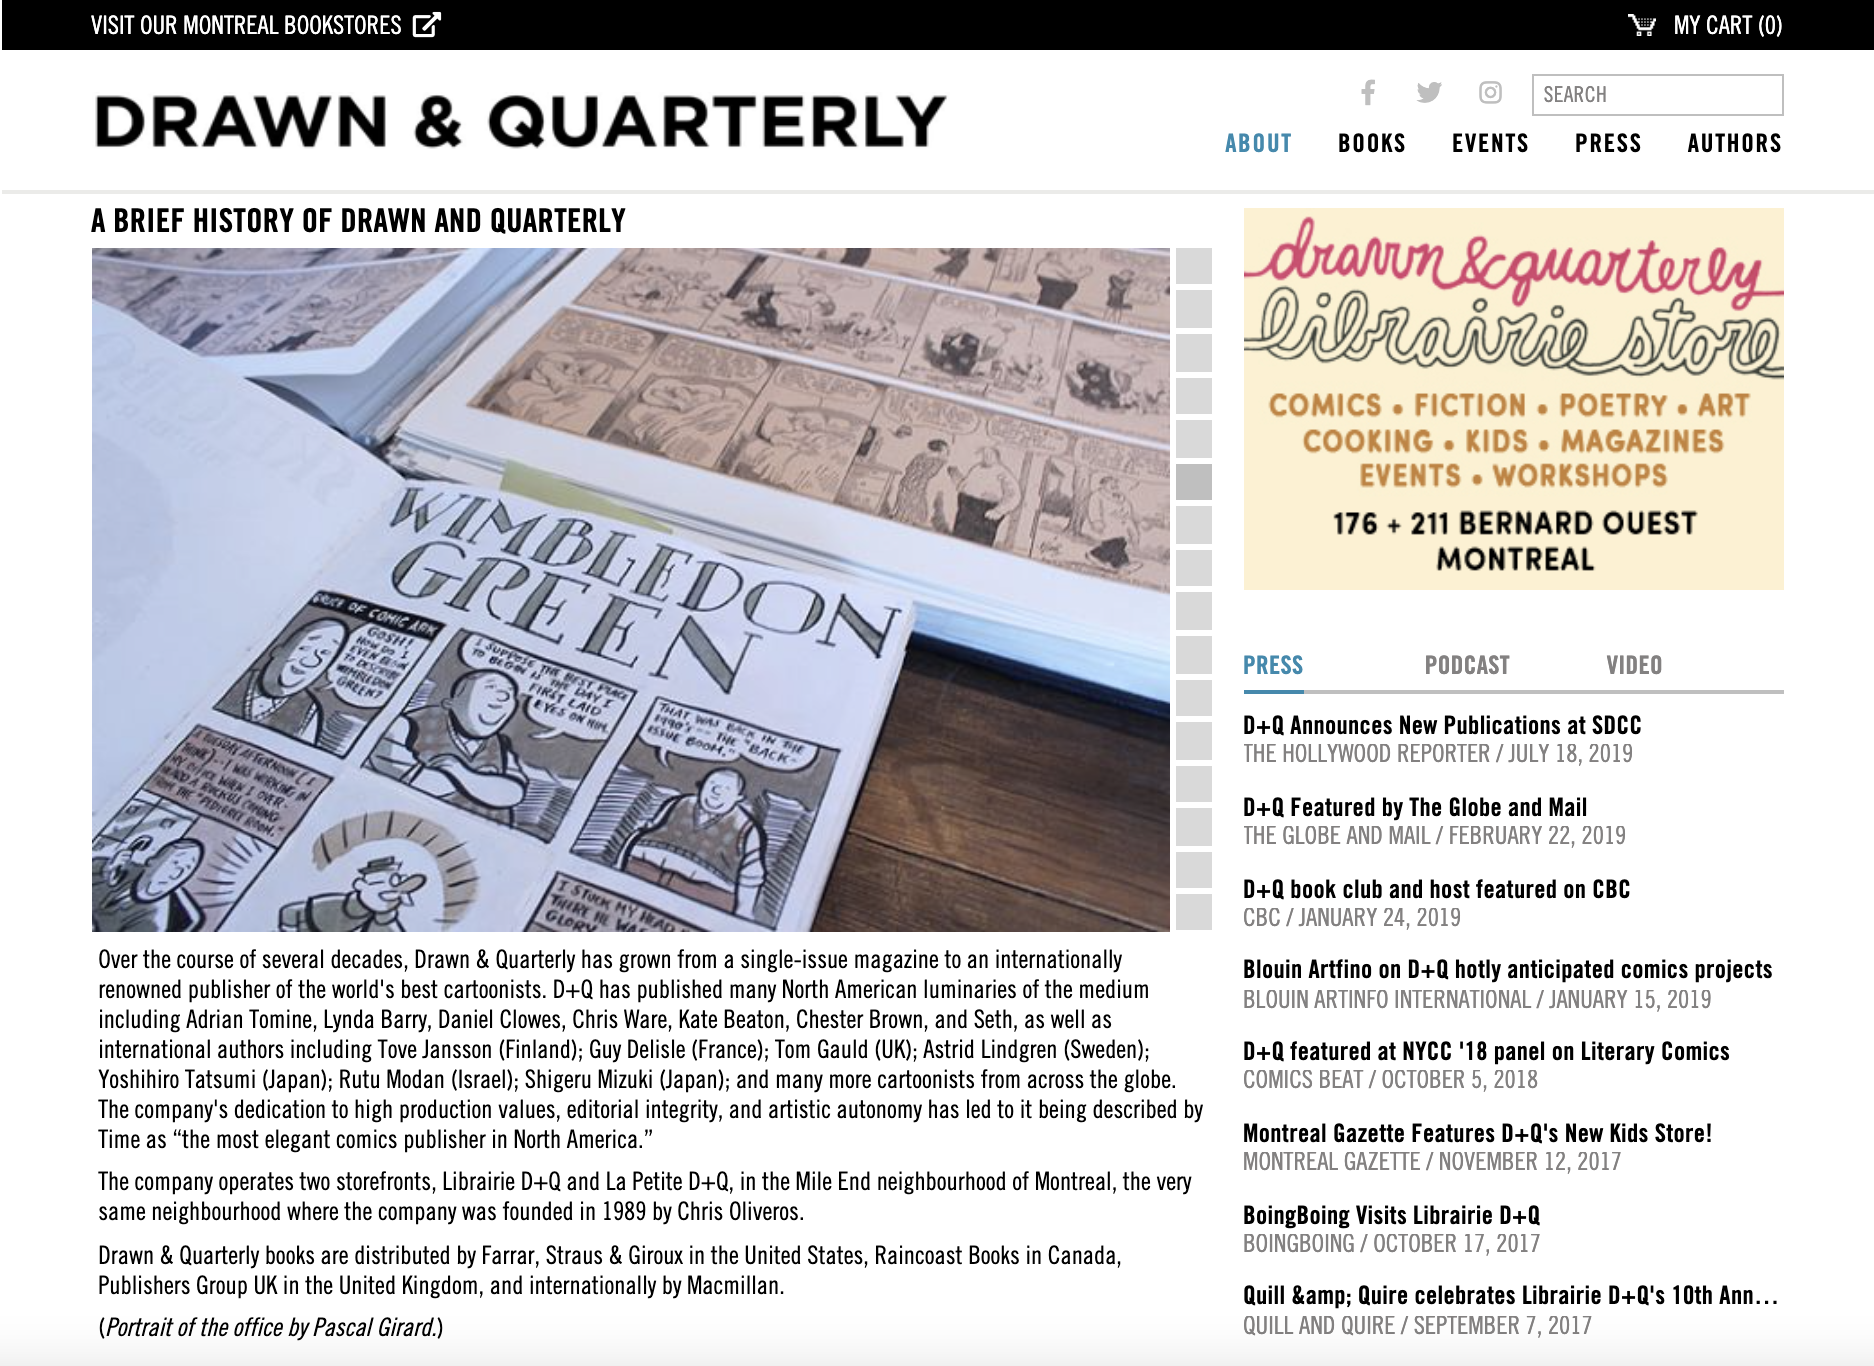 Drawn and Quarterly About Us Page